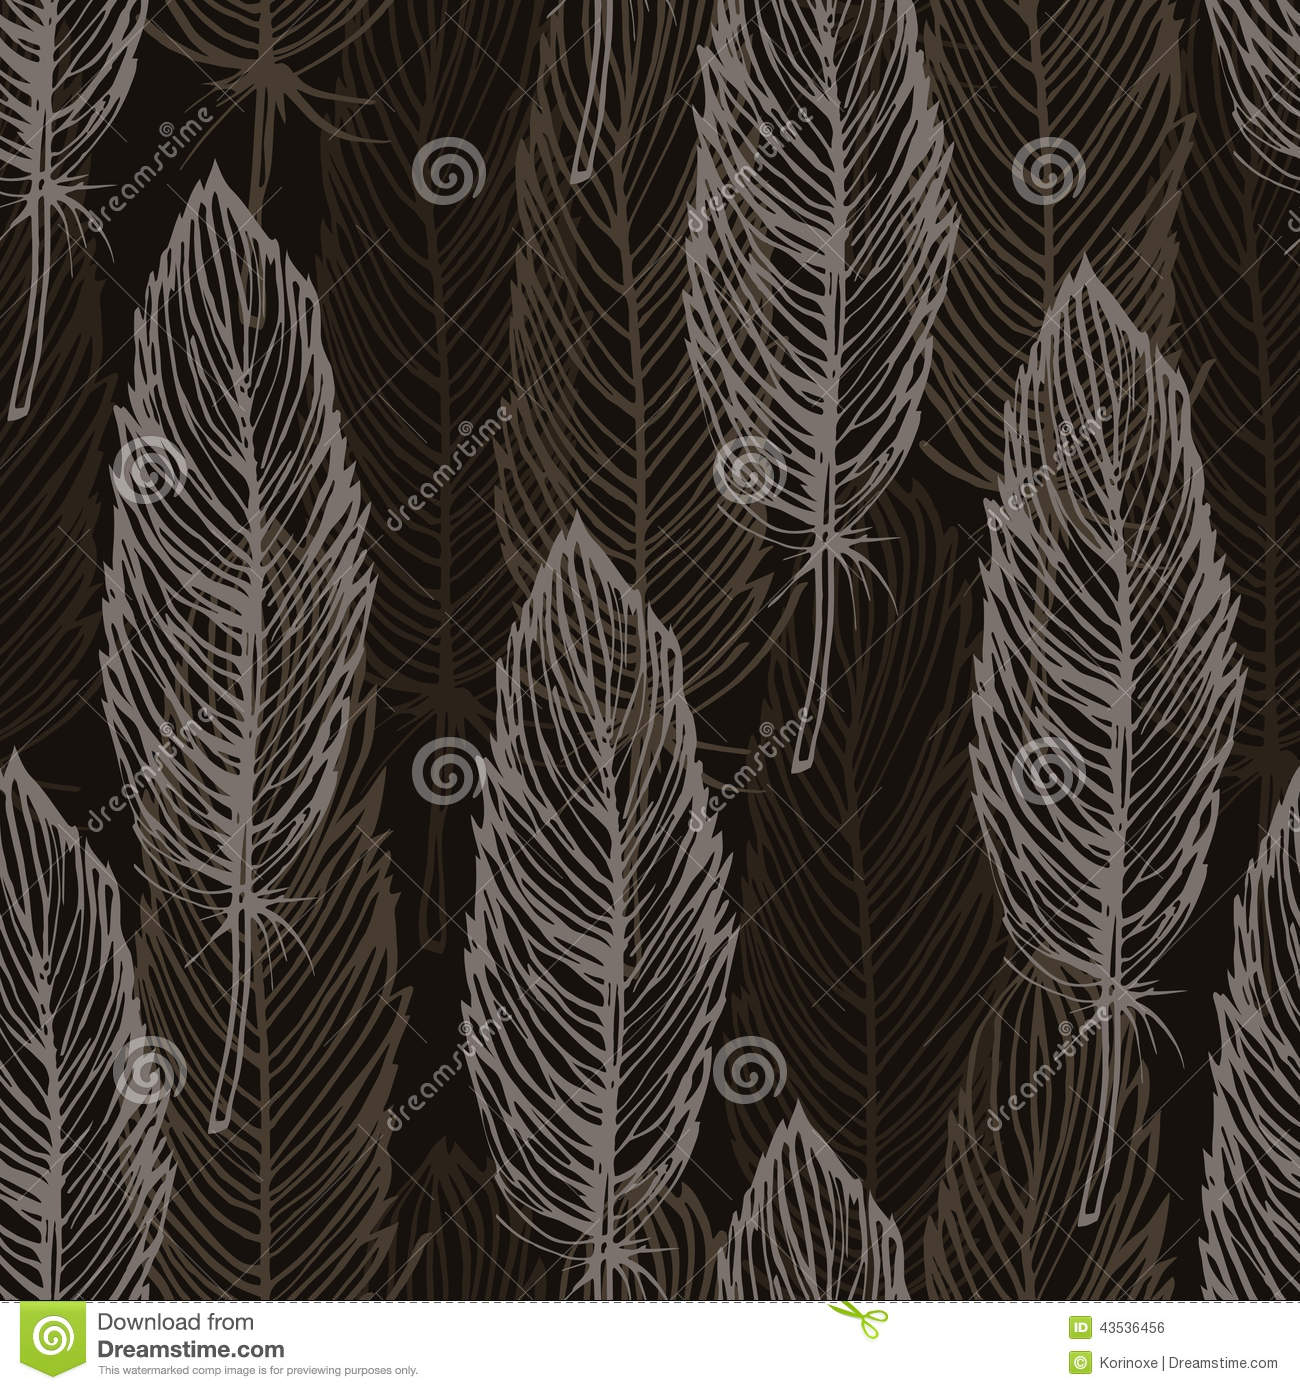 Brown feather outline seamless pattern, vector background. Peacock Pattern Outline